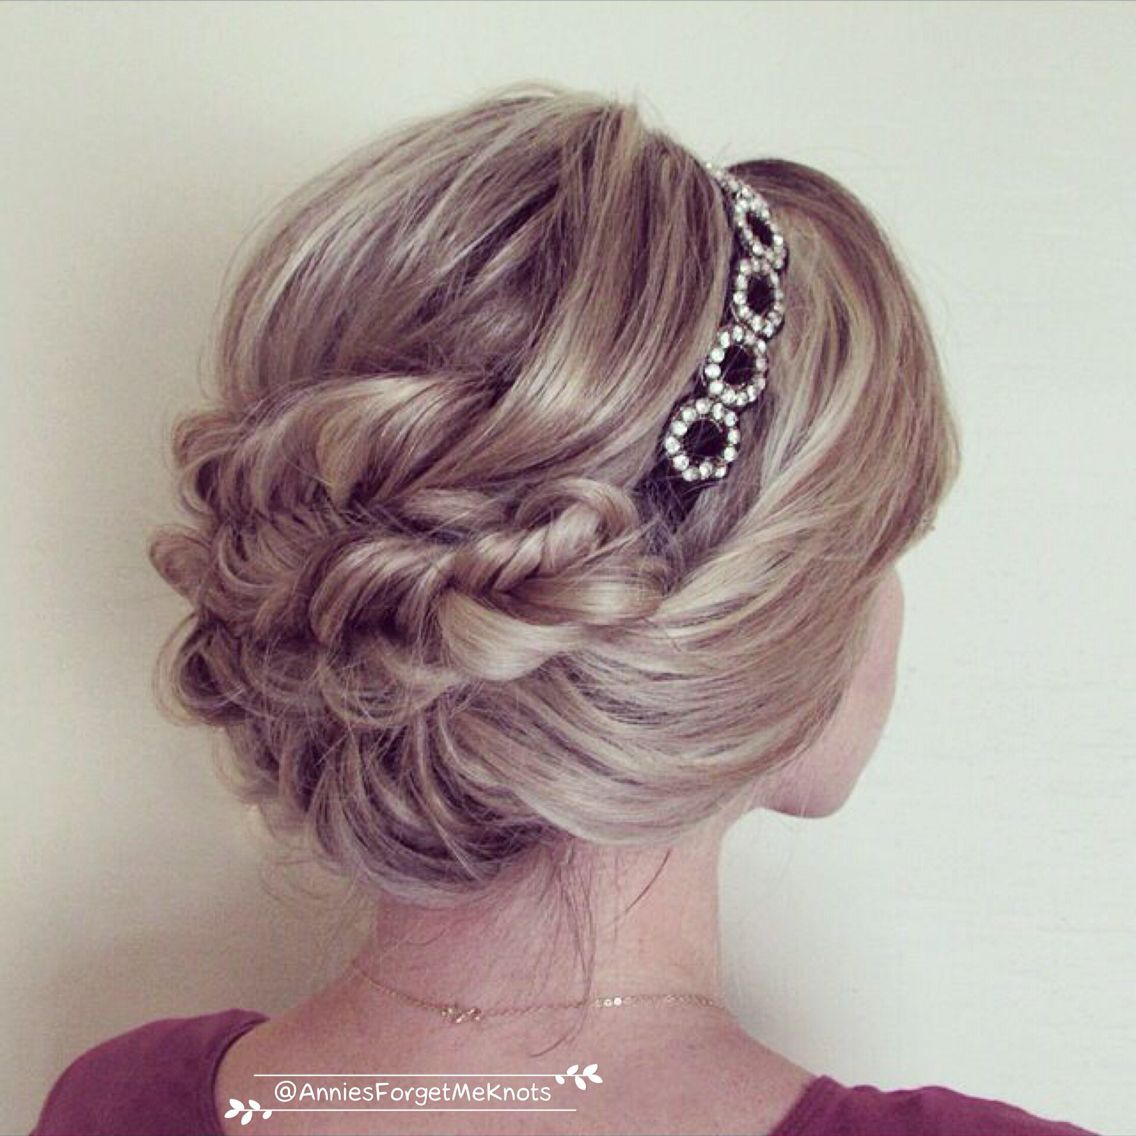 Coiffure Facile Headband How To Headband Updo And Fishtail Braids I Need To Get